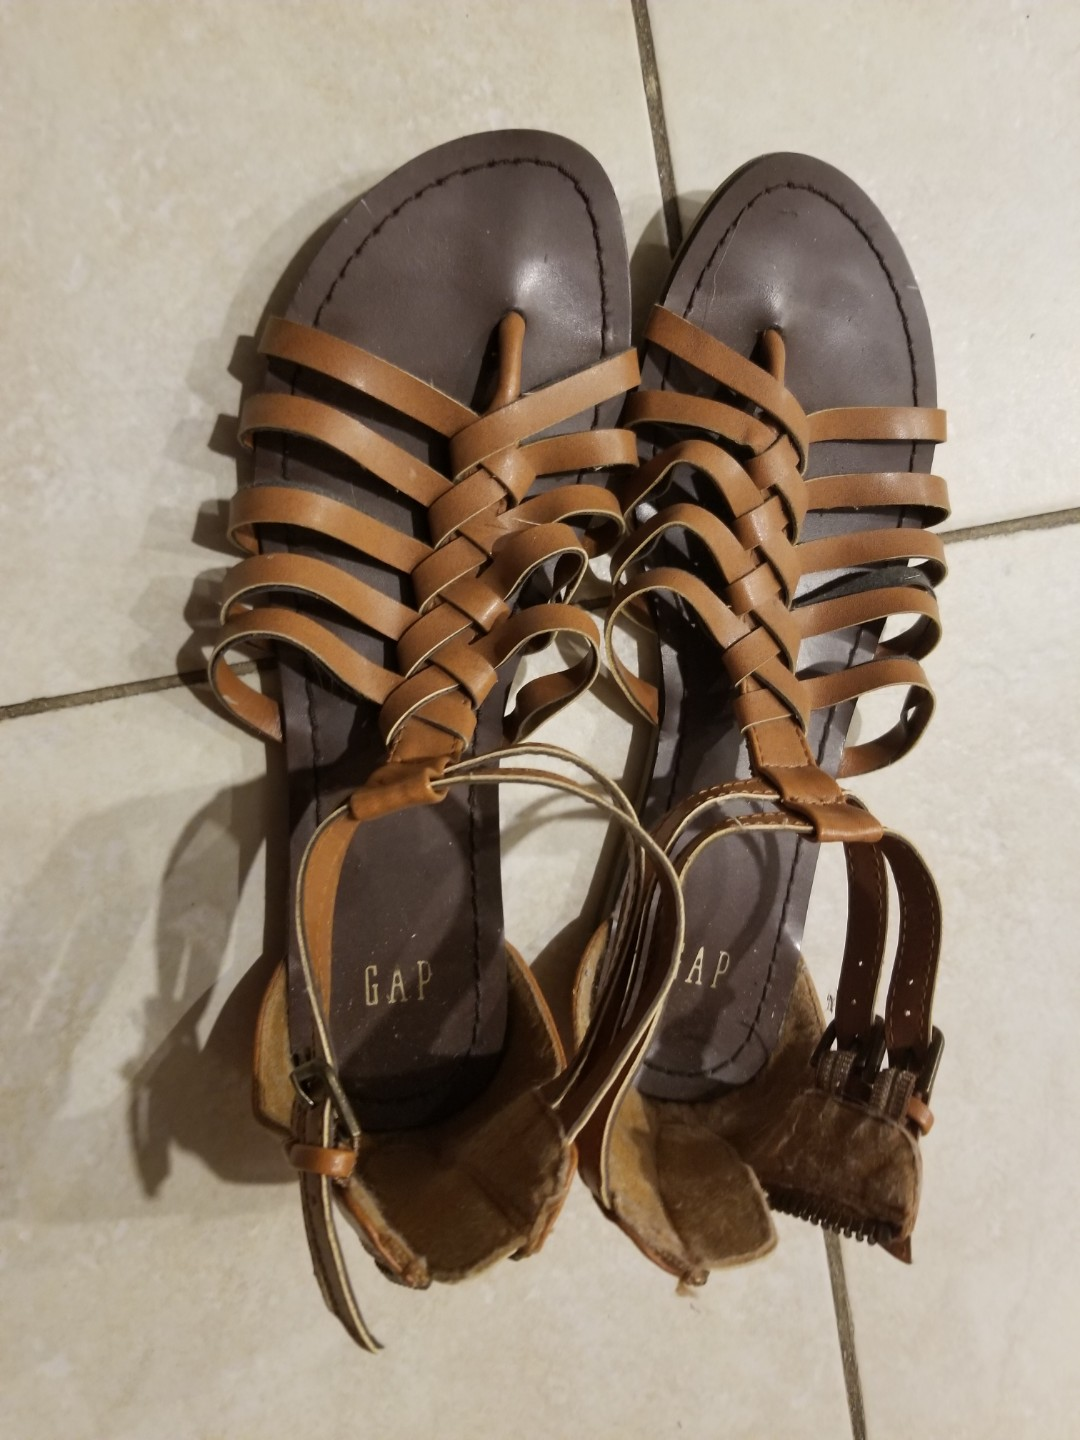 EUC Gap sandals Size 6